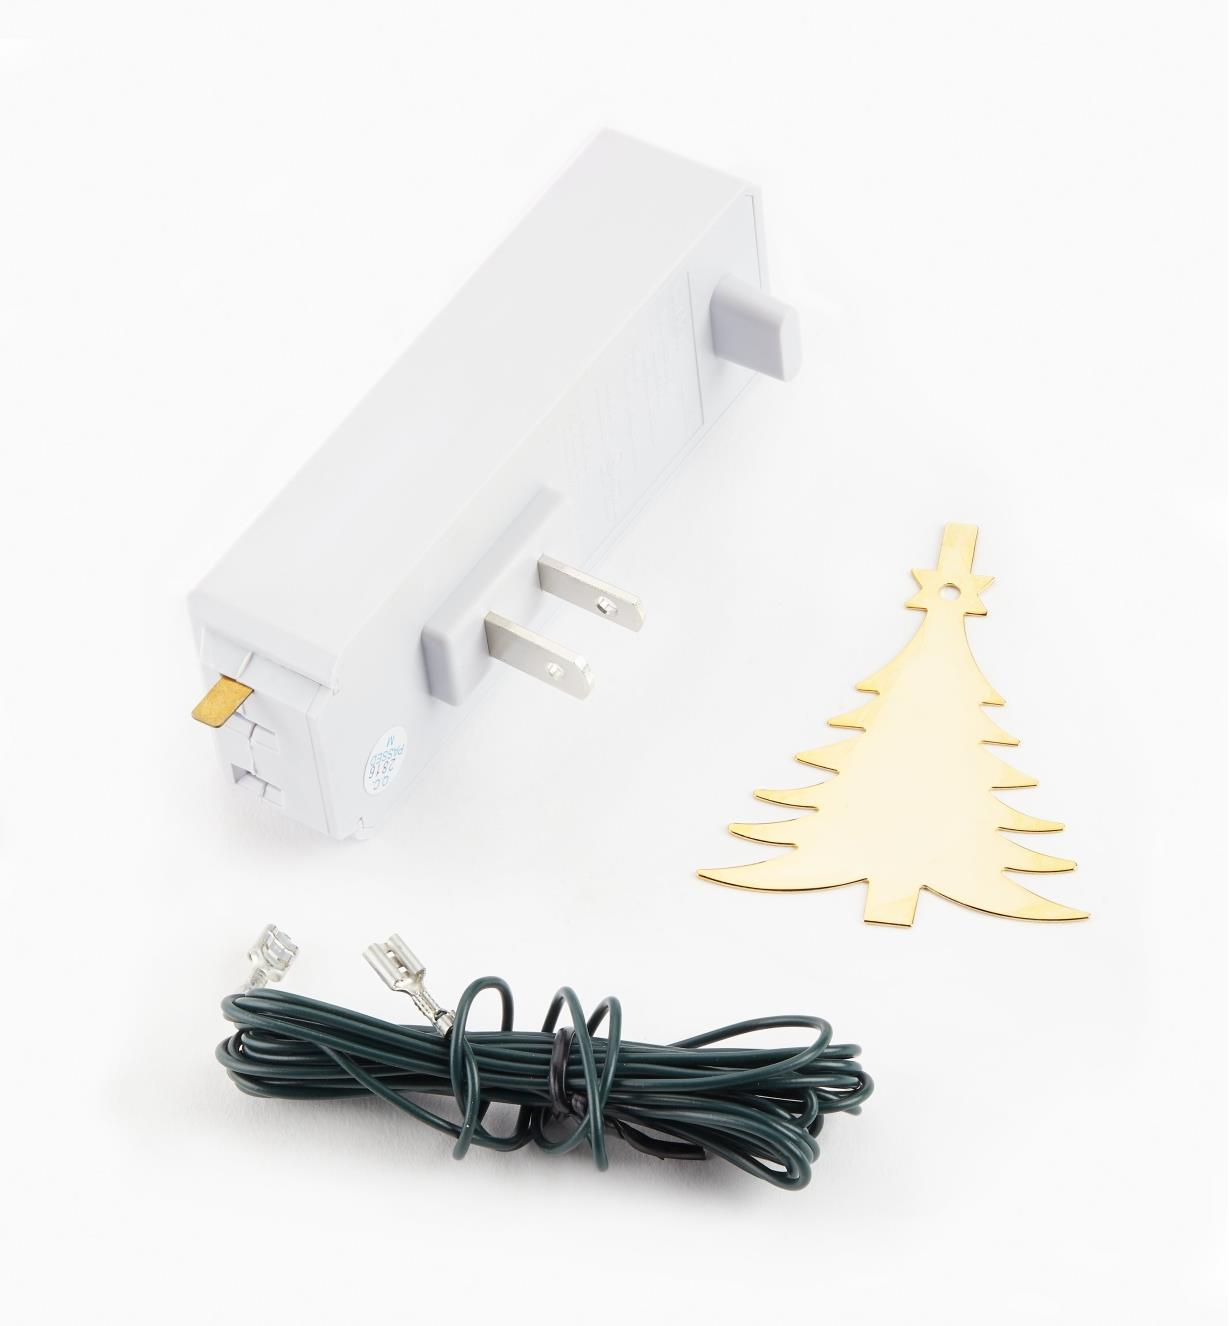 KC530 - Touch Control for Christmas Lights